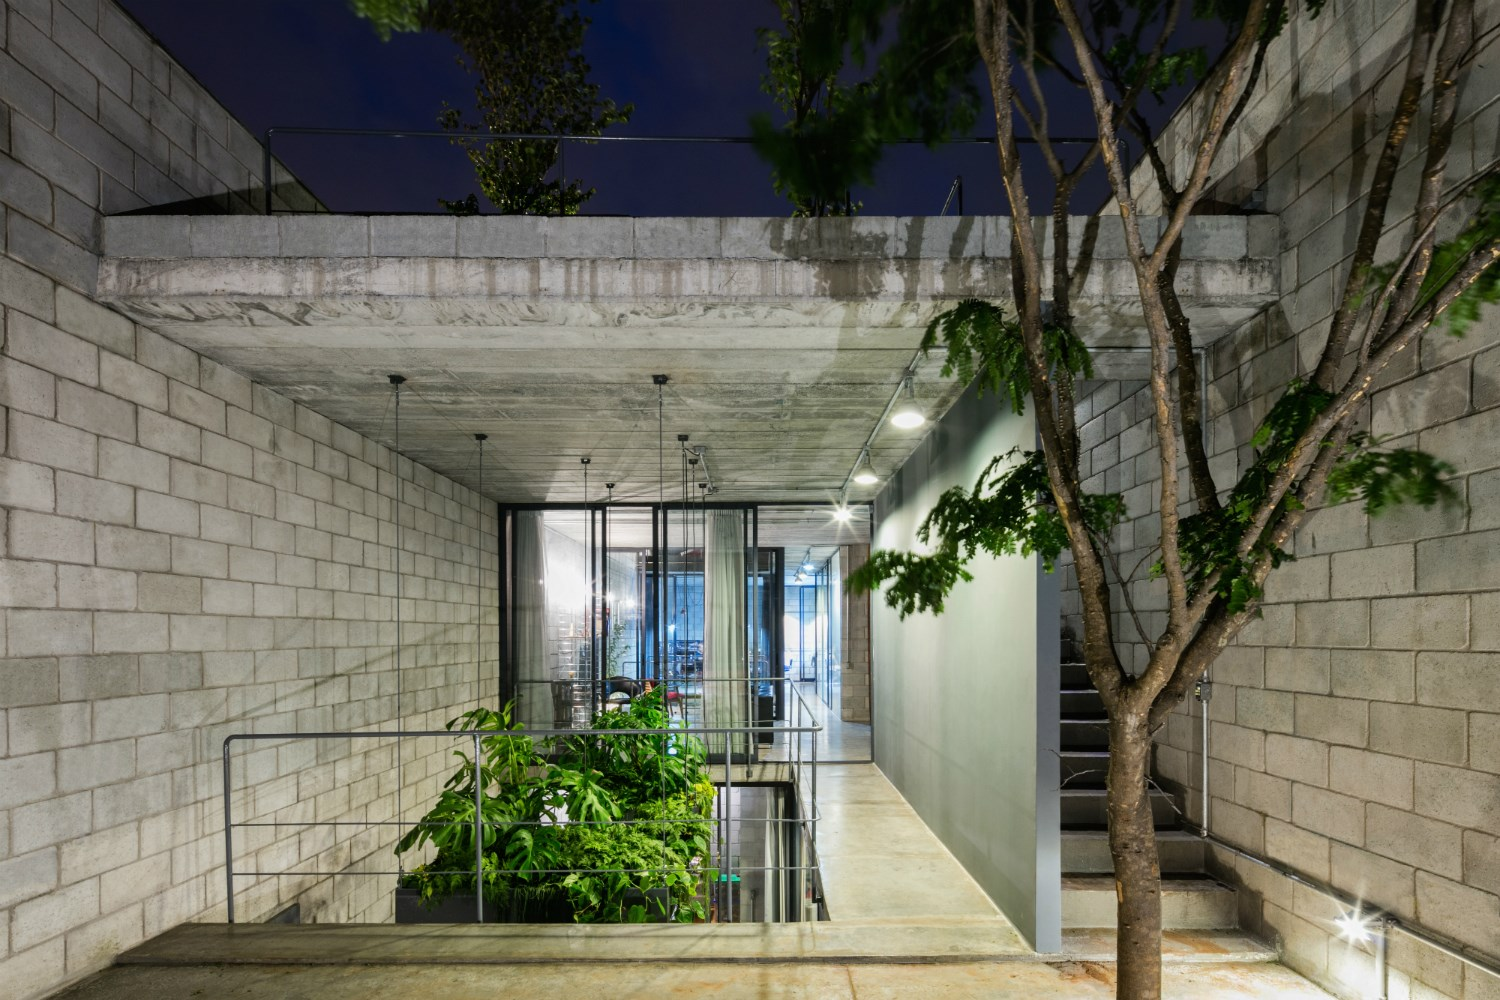 Located in the most populous city of Brazil, this long and narrow home in São Paulo was redesigned to create more space. In a city where the value of land is getting ever higher, the design of this home by Terra e Tuma Arquitetos Associados does not discount the value of creating more open spaces infused with greenery.